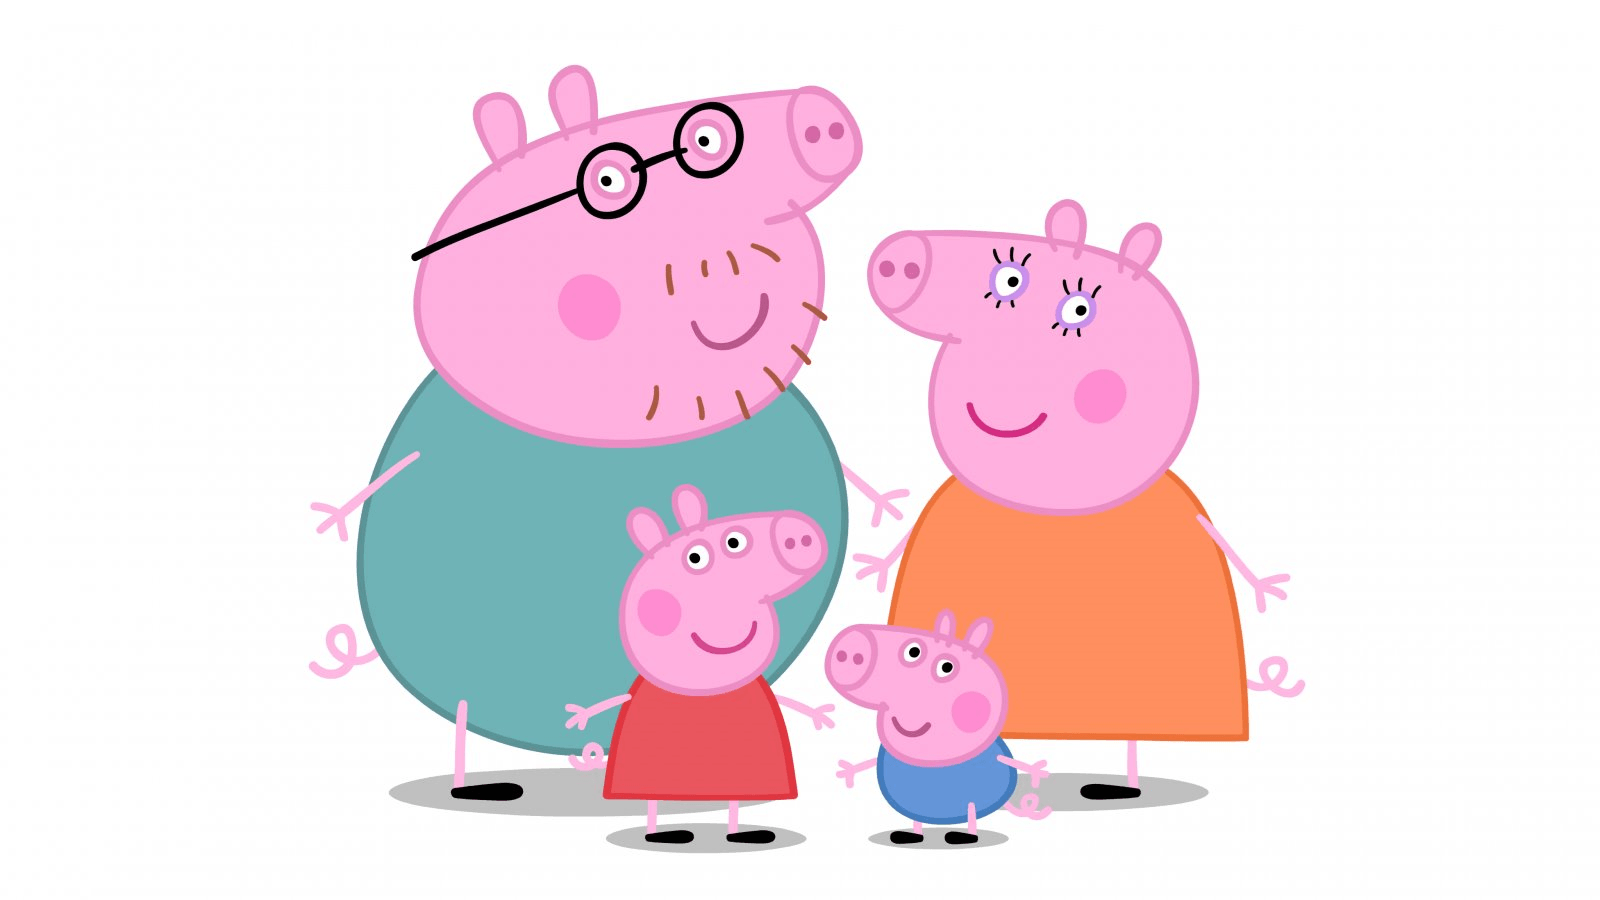 Disney HD Wallpapers: Peppa Pig HD Wallpapers Desktop Background